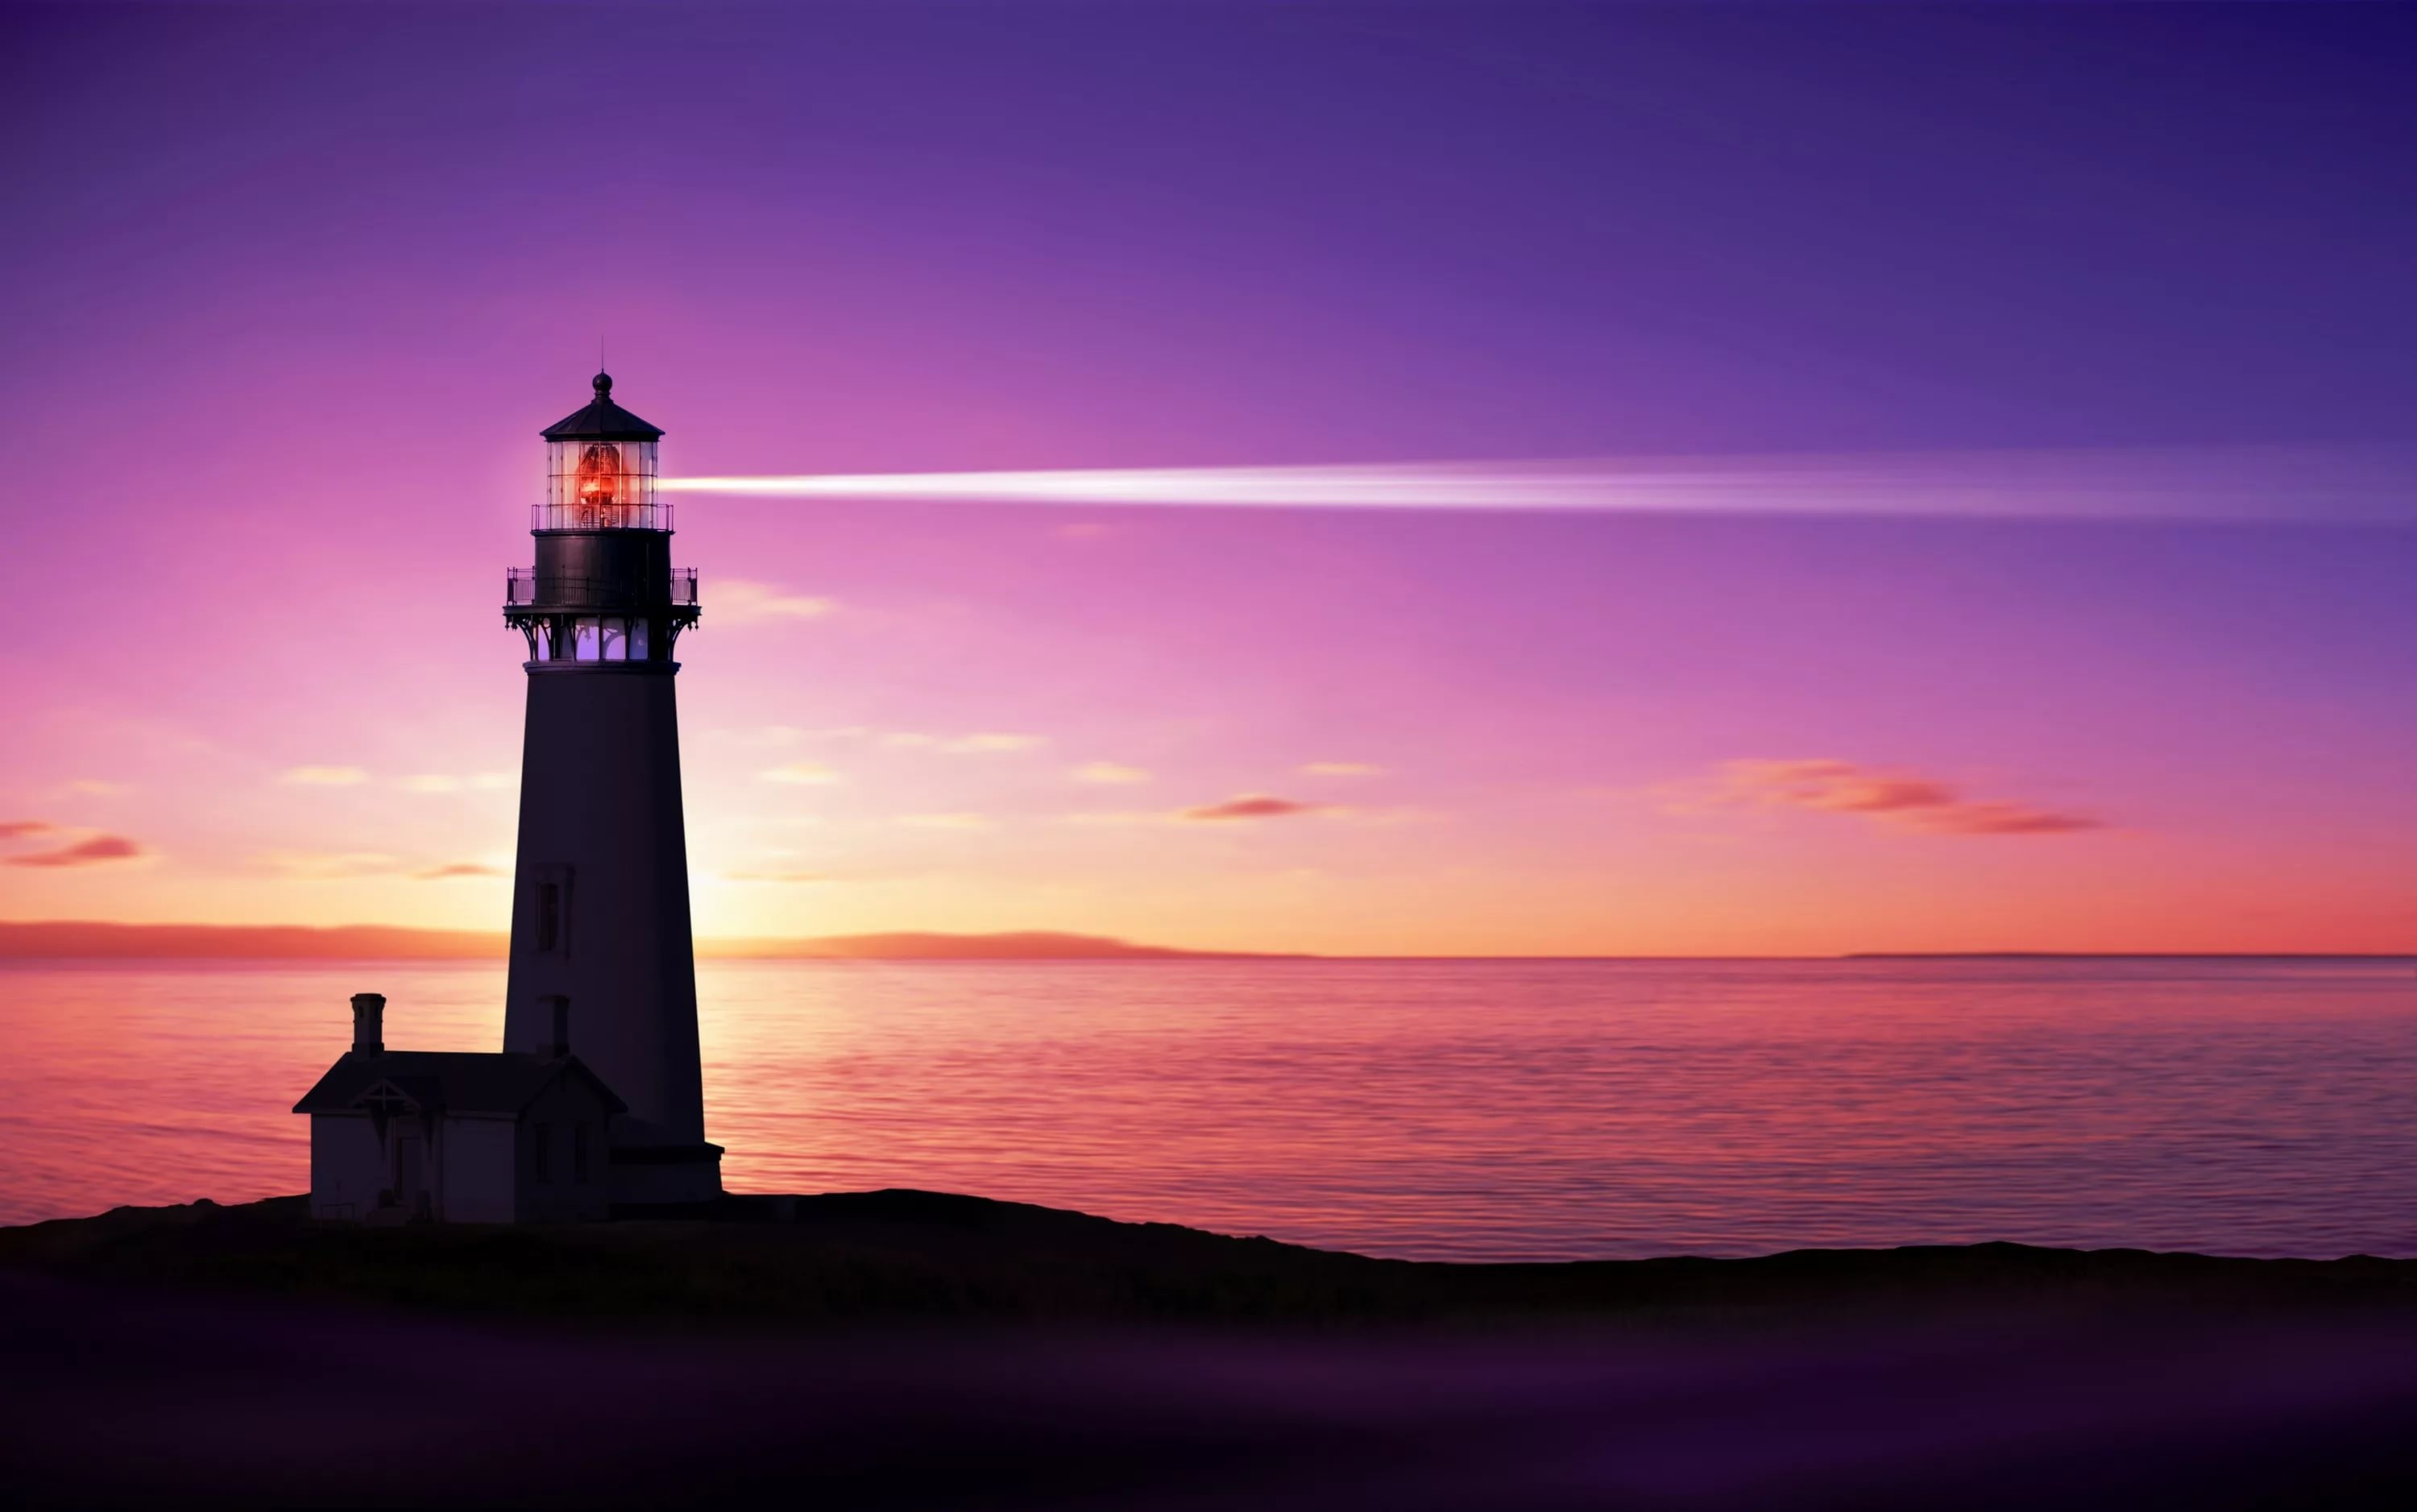 Lighthouse Wallpaper (78+ Images